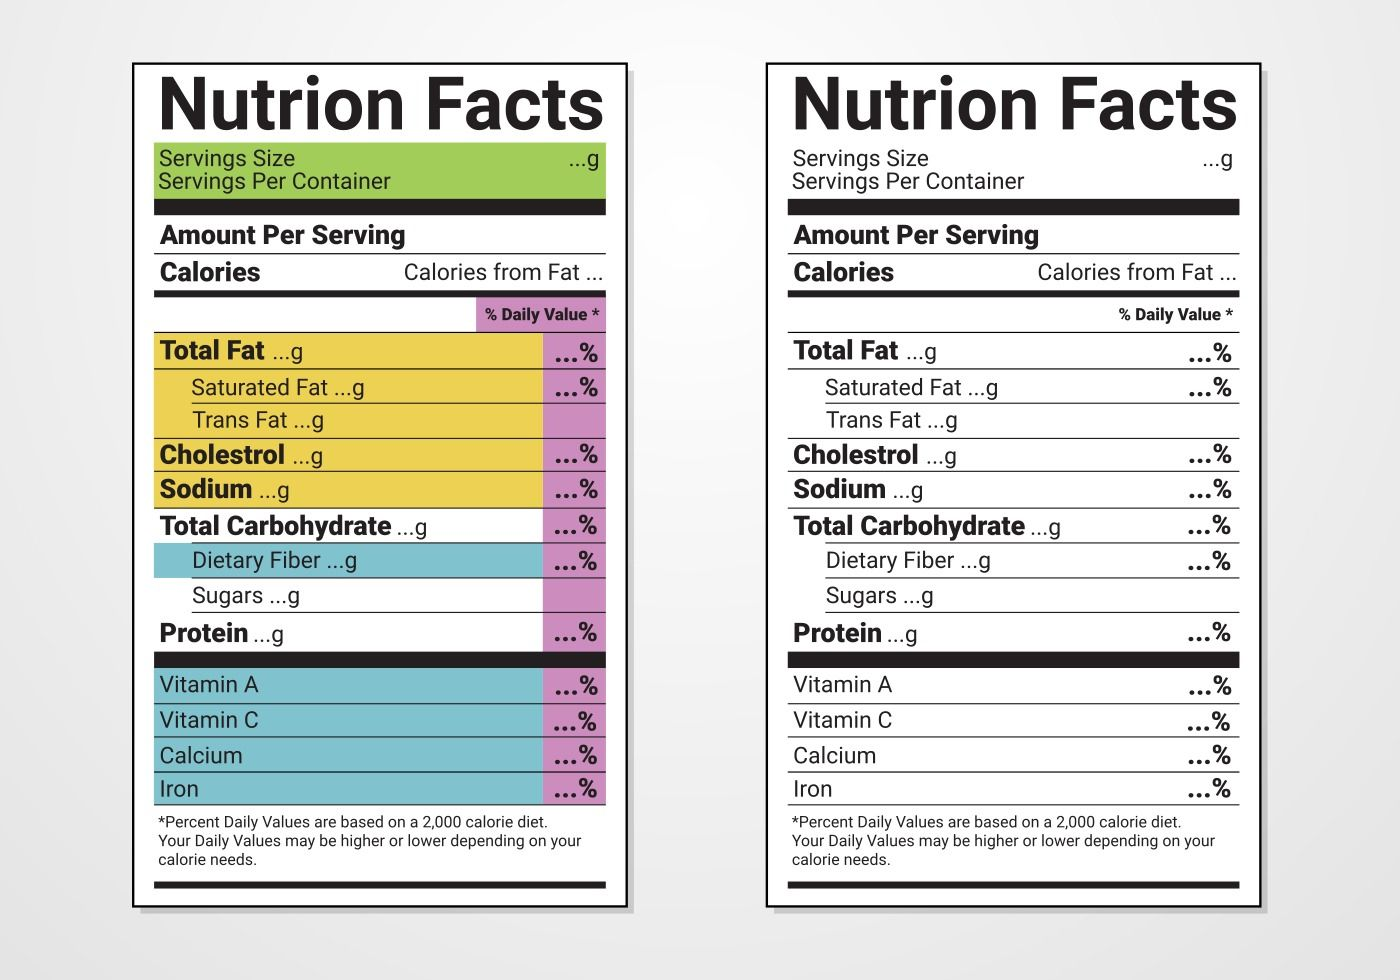 Nutrition Facts Free Vector Art